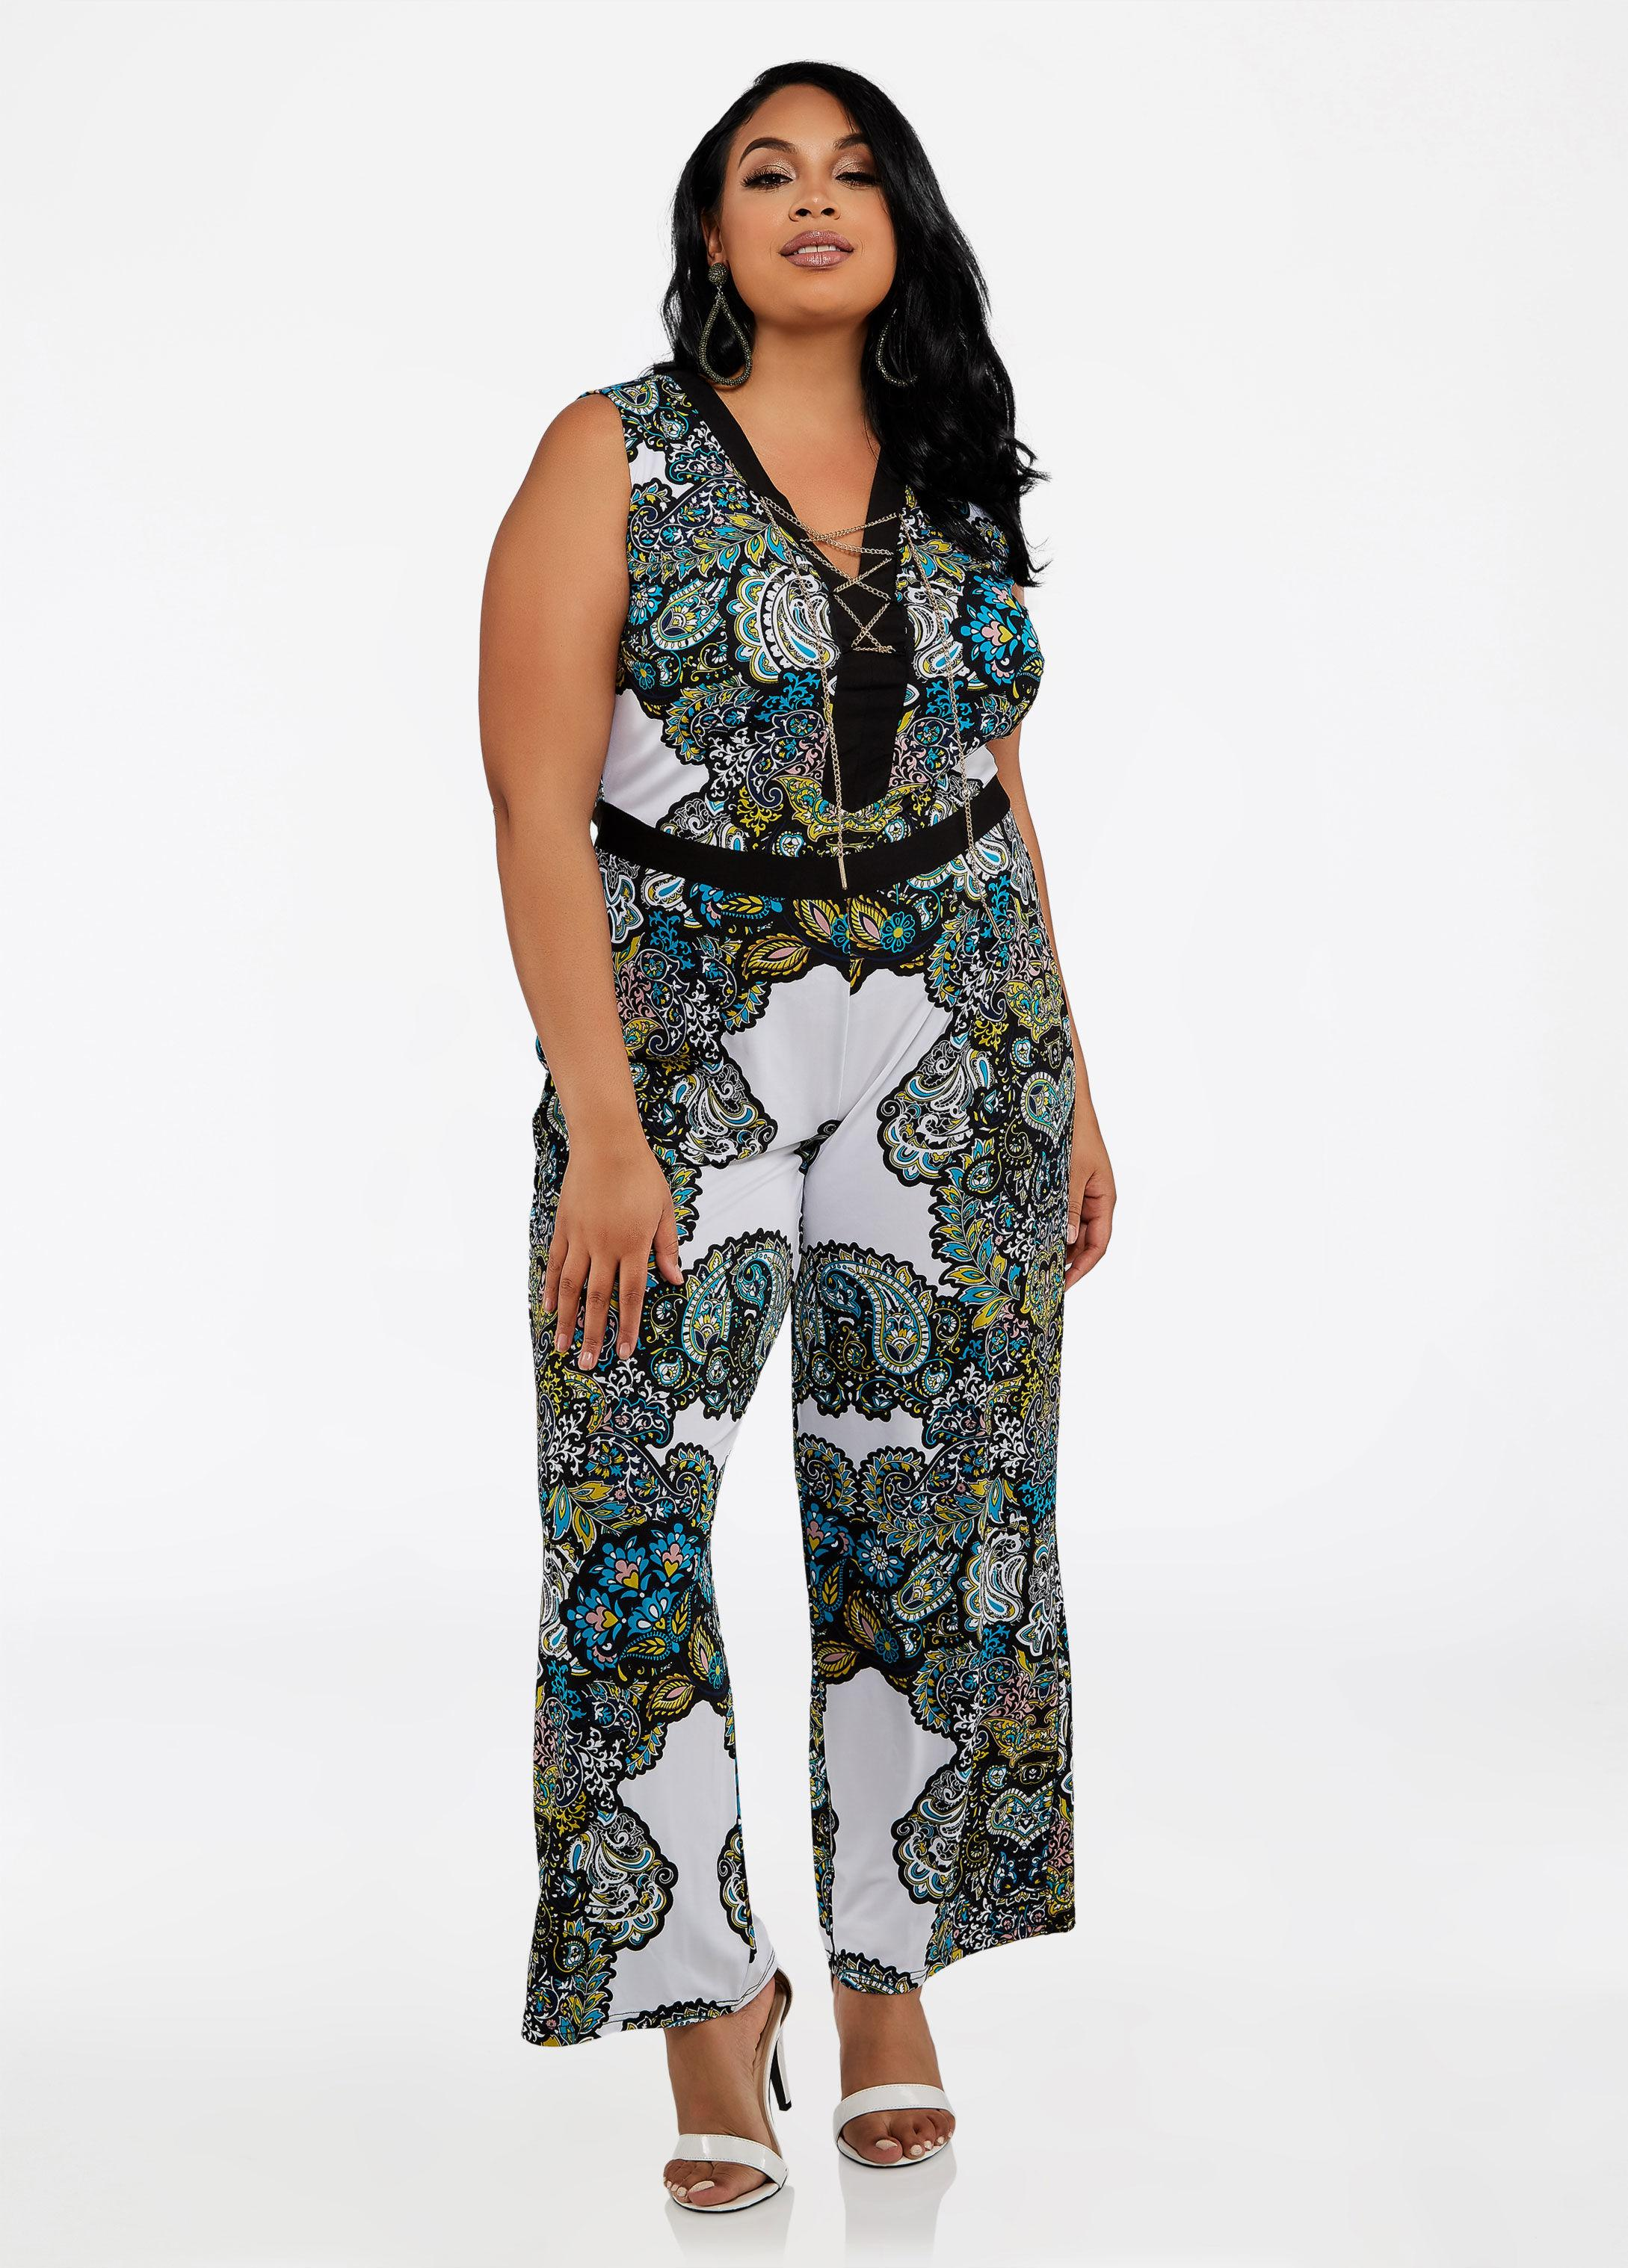 937689b85f8ea Lyst - Ashley Stewart Plus Size Chain Lace Up Print Jumpsuit in White